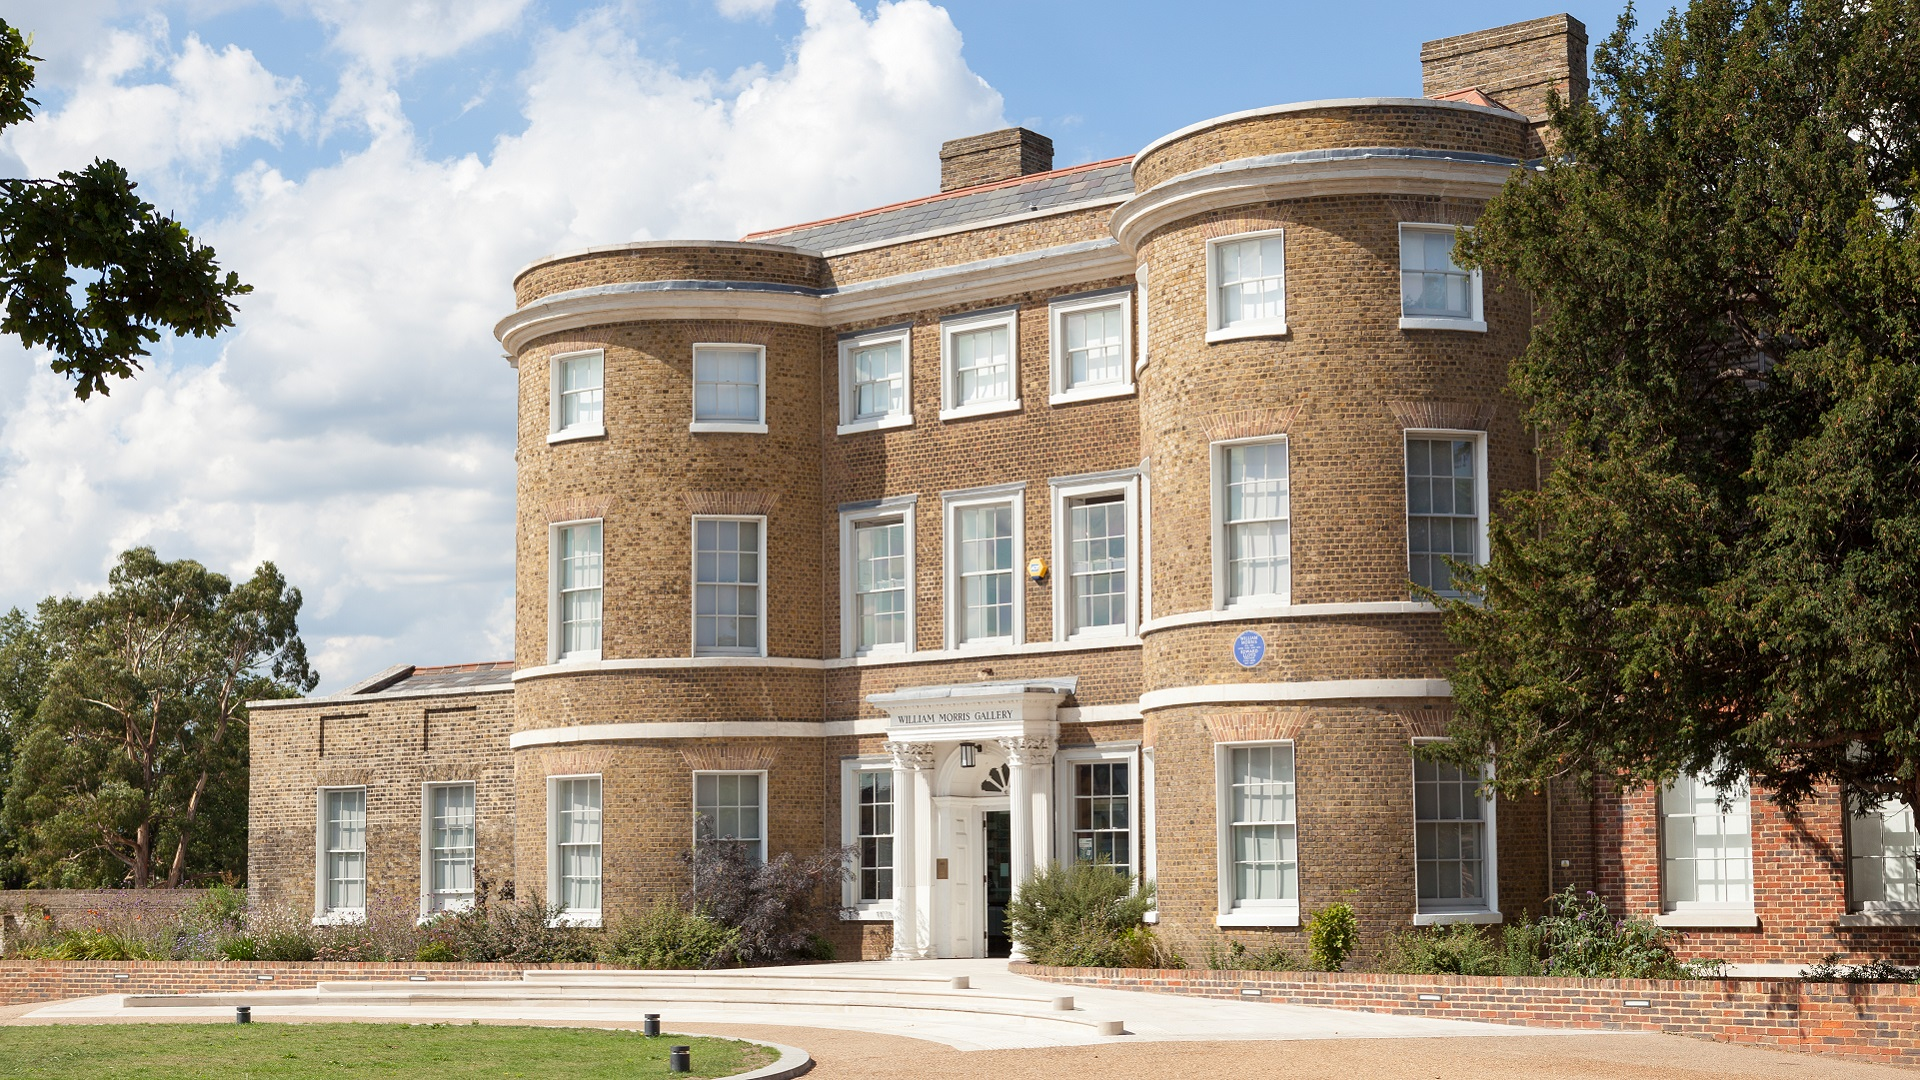 exterior of william morris gallery walthamstow